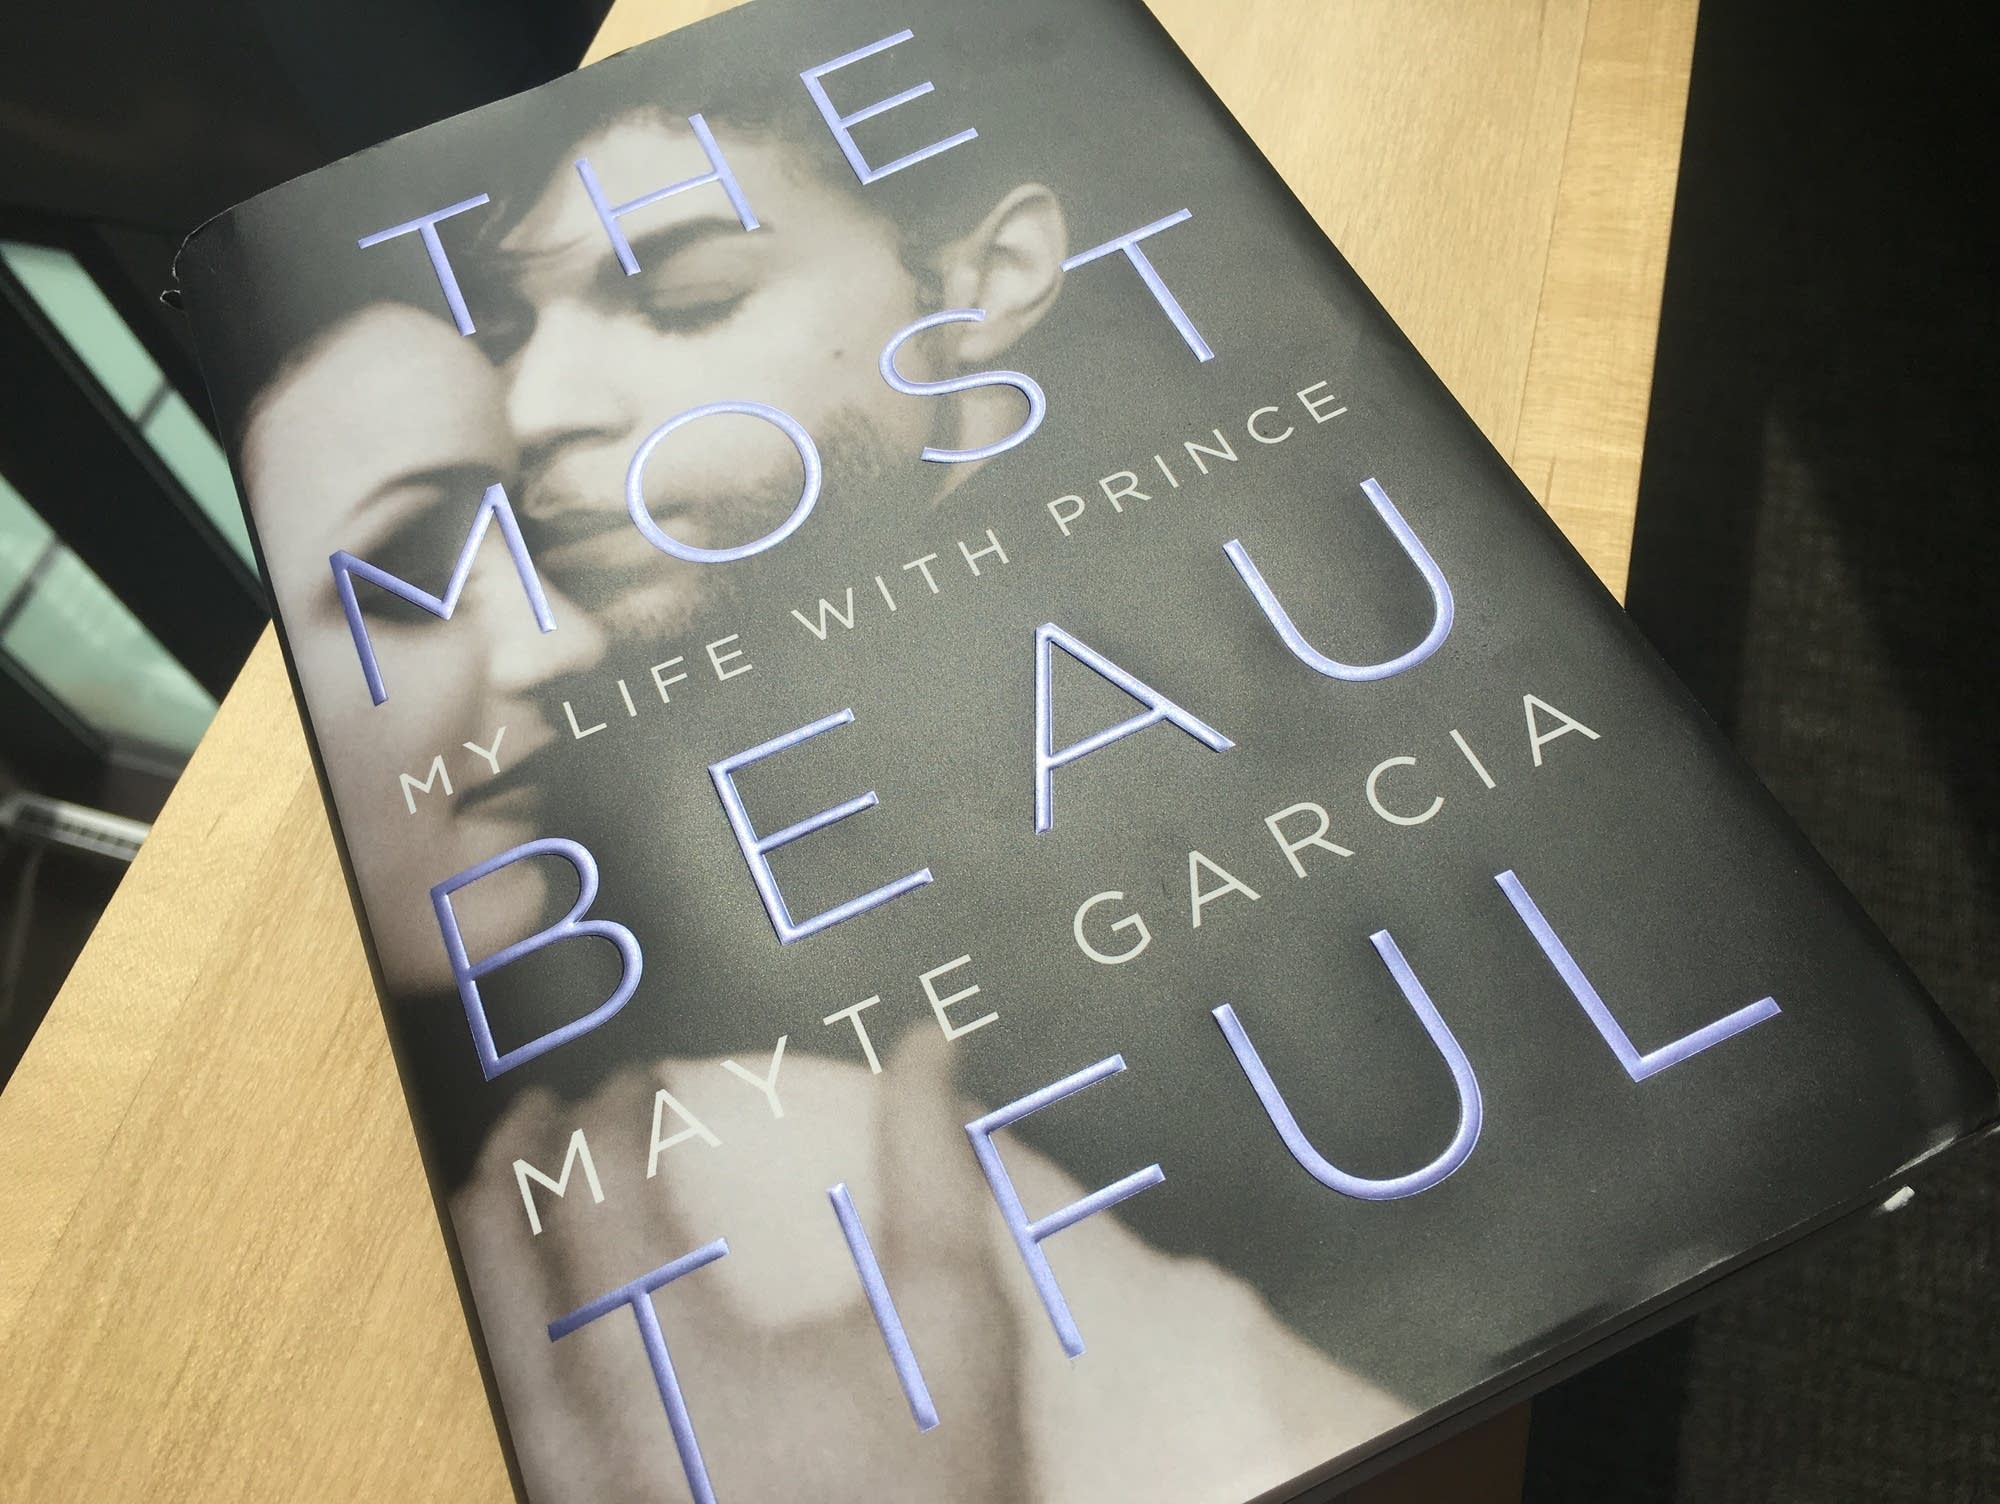 Mayte Garcia's book 'The Most Beautiful'